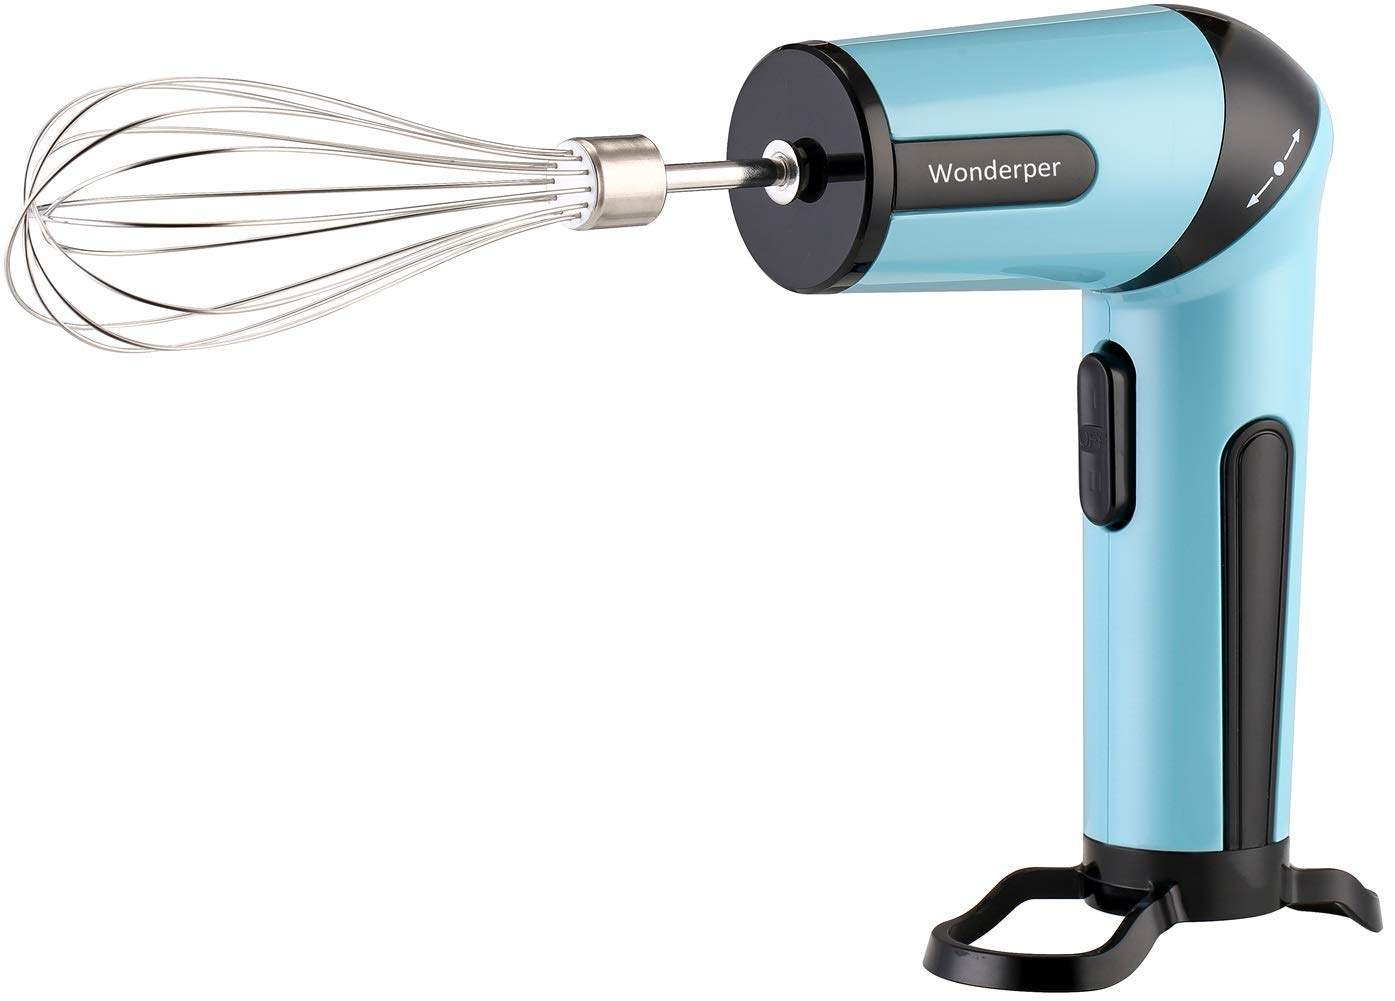 Wonderper Cordless Hand Mixer Battery Operated Mixer Battery Hand Mixer Battery Operated Hand Mixer Cordless Mixer Rechargeable - Blue by Wonderper